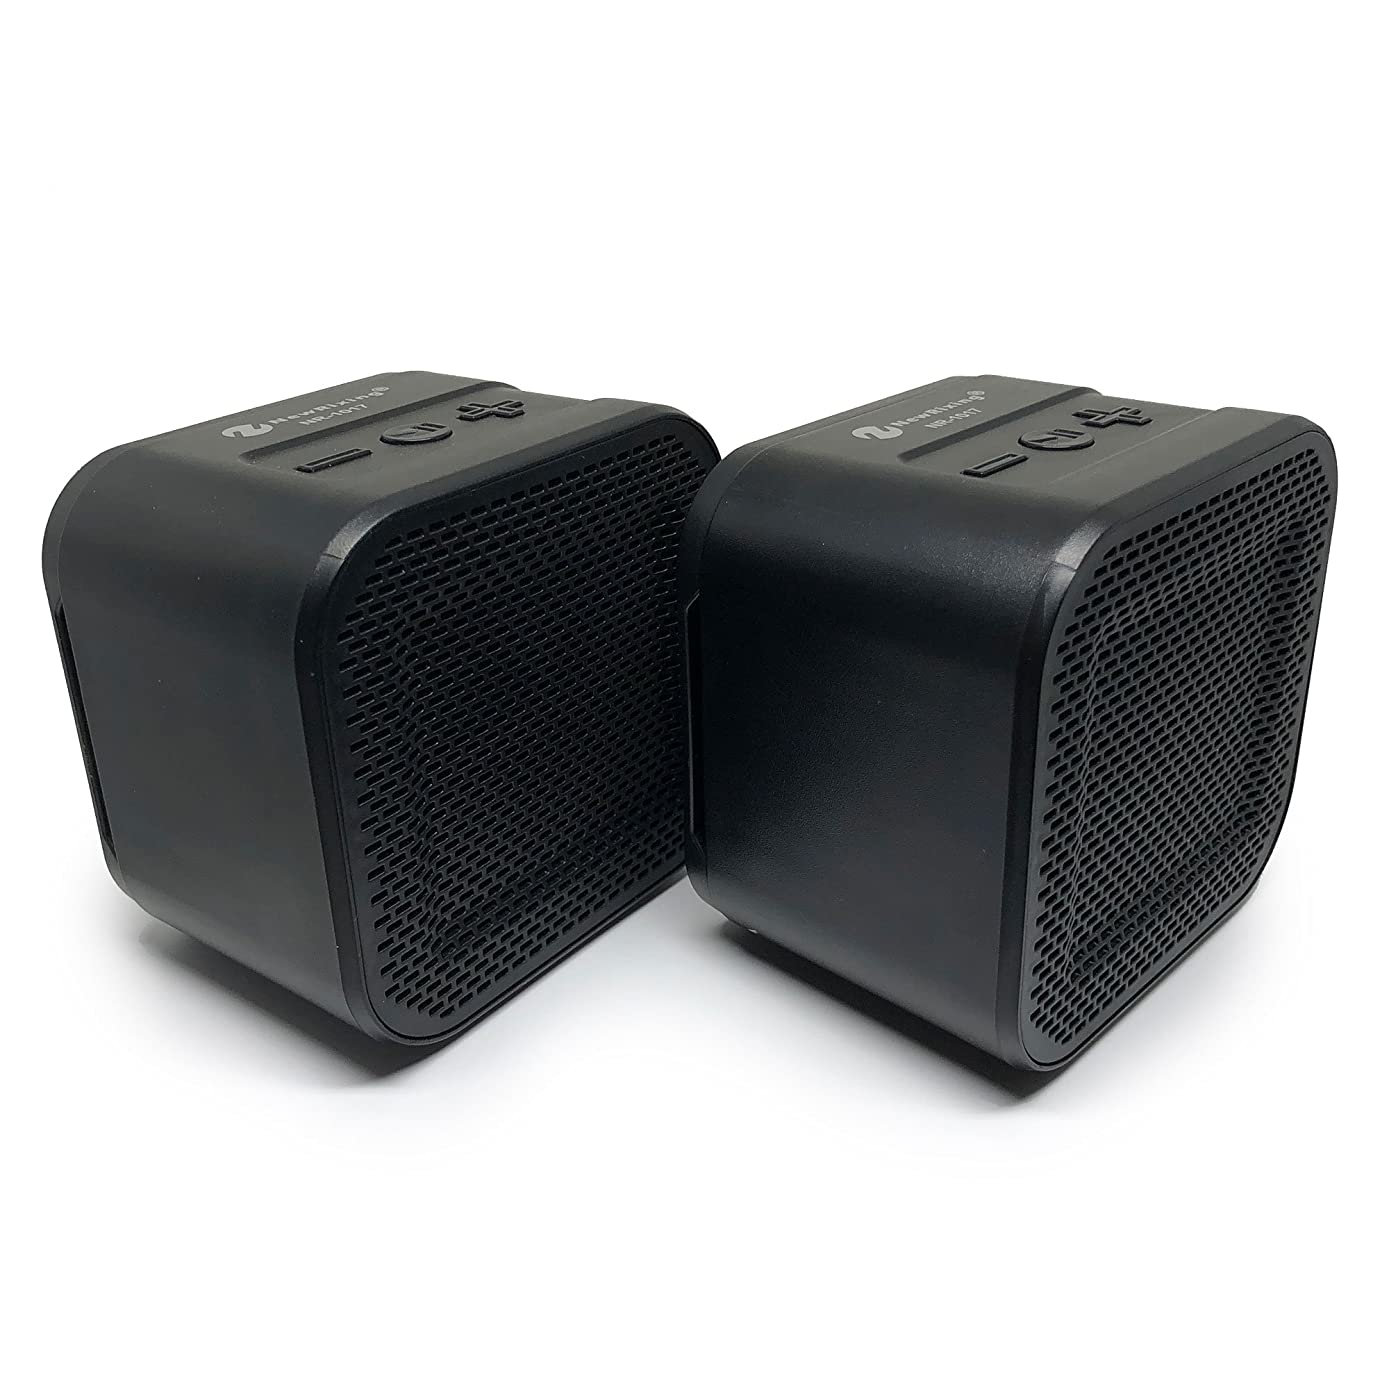 Bluetooth Speaker Set: True Wireless Twin Portable TWS Mini Stereo Pair Speakers Mic Outdoor Dual Big Bass Microphone FM SD TF Card for iPhone Android Samsung Galaxy Nexus Laptops MAC PC Tablets Echo